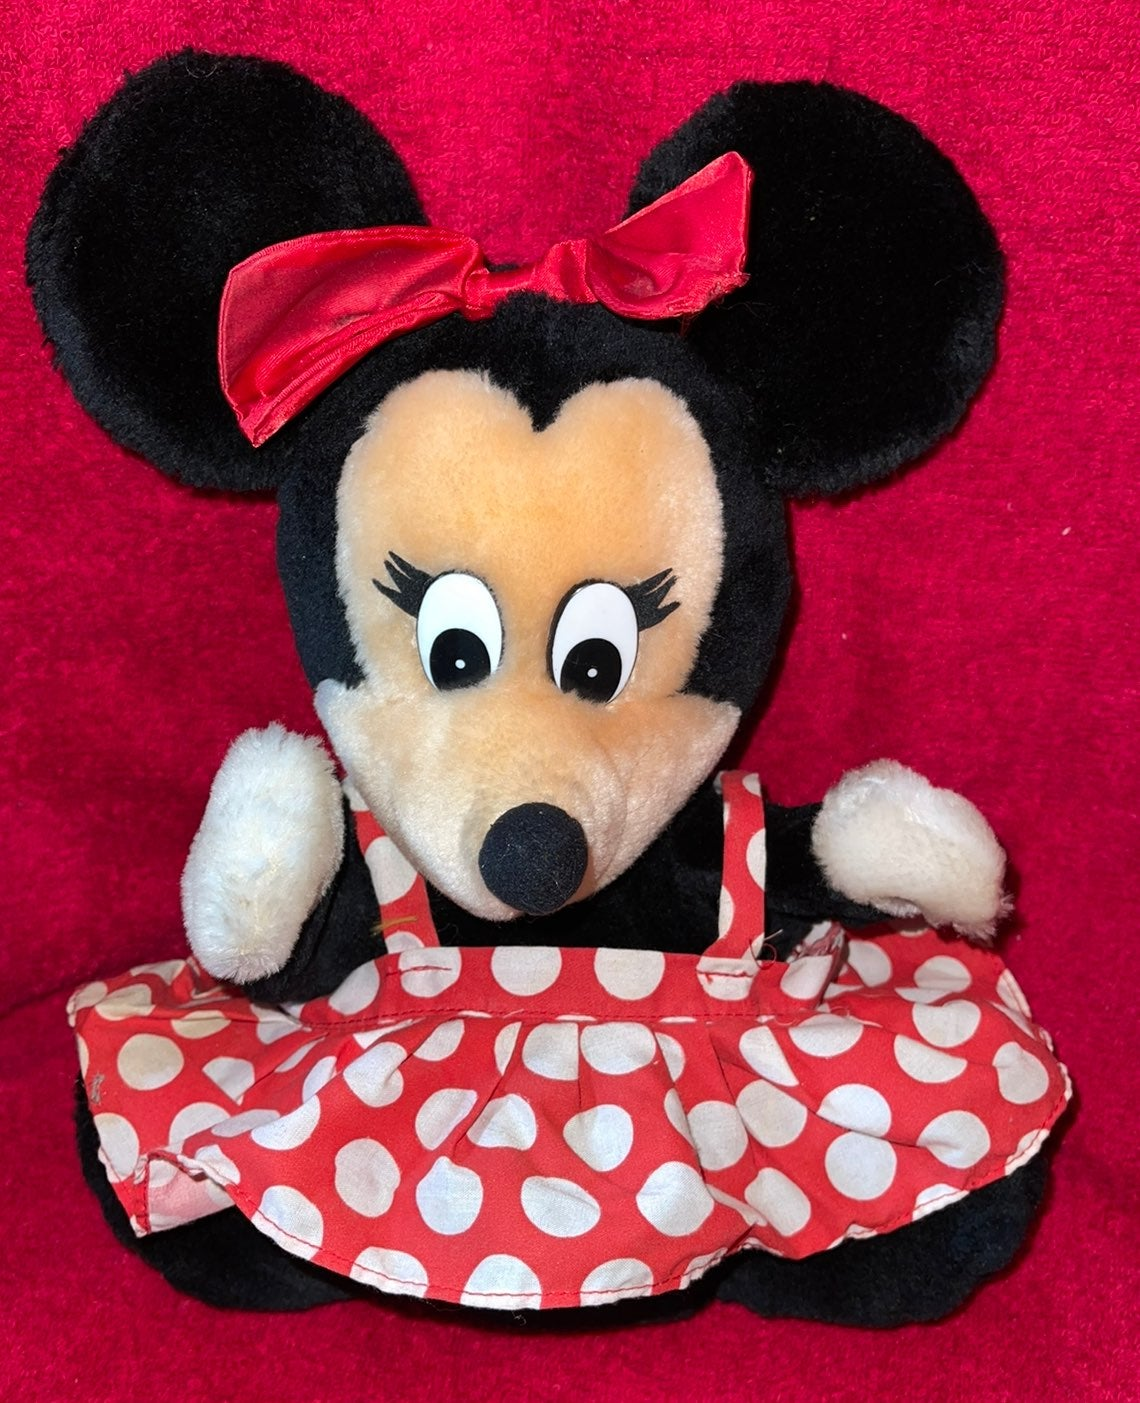 Plush Vintage Minnie Mouse Puppet 9""